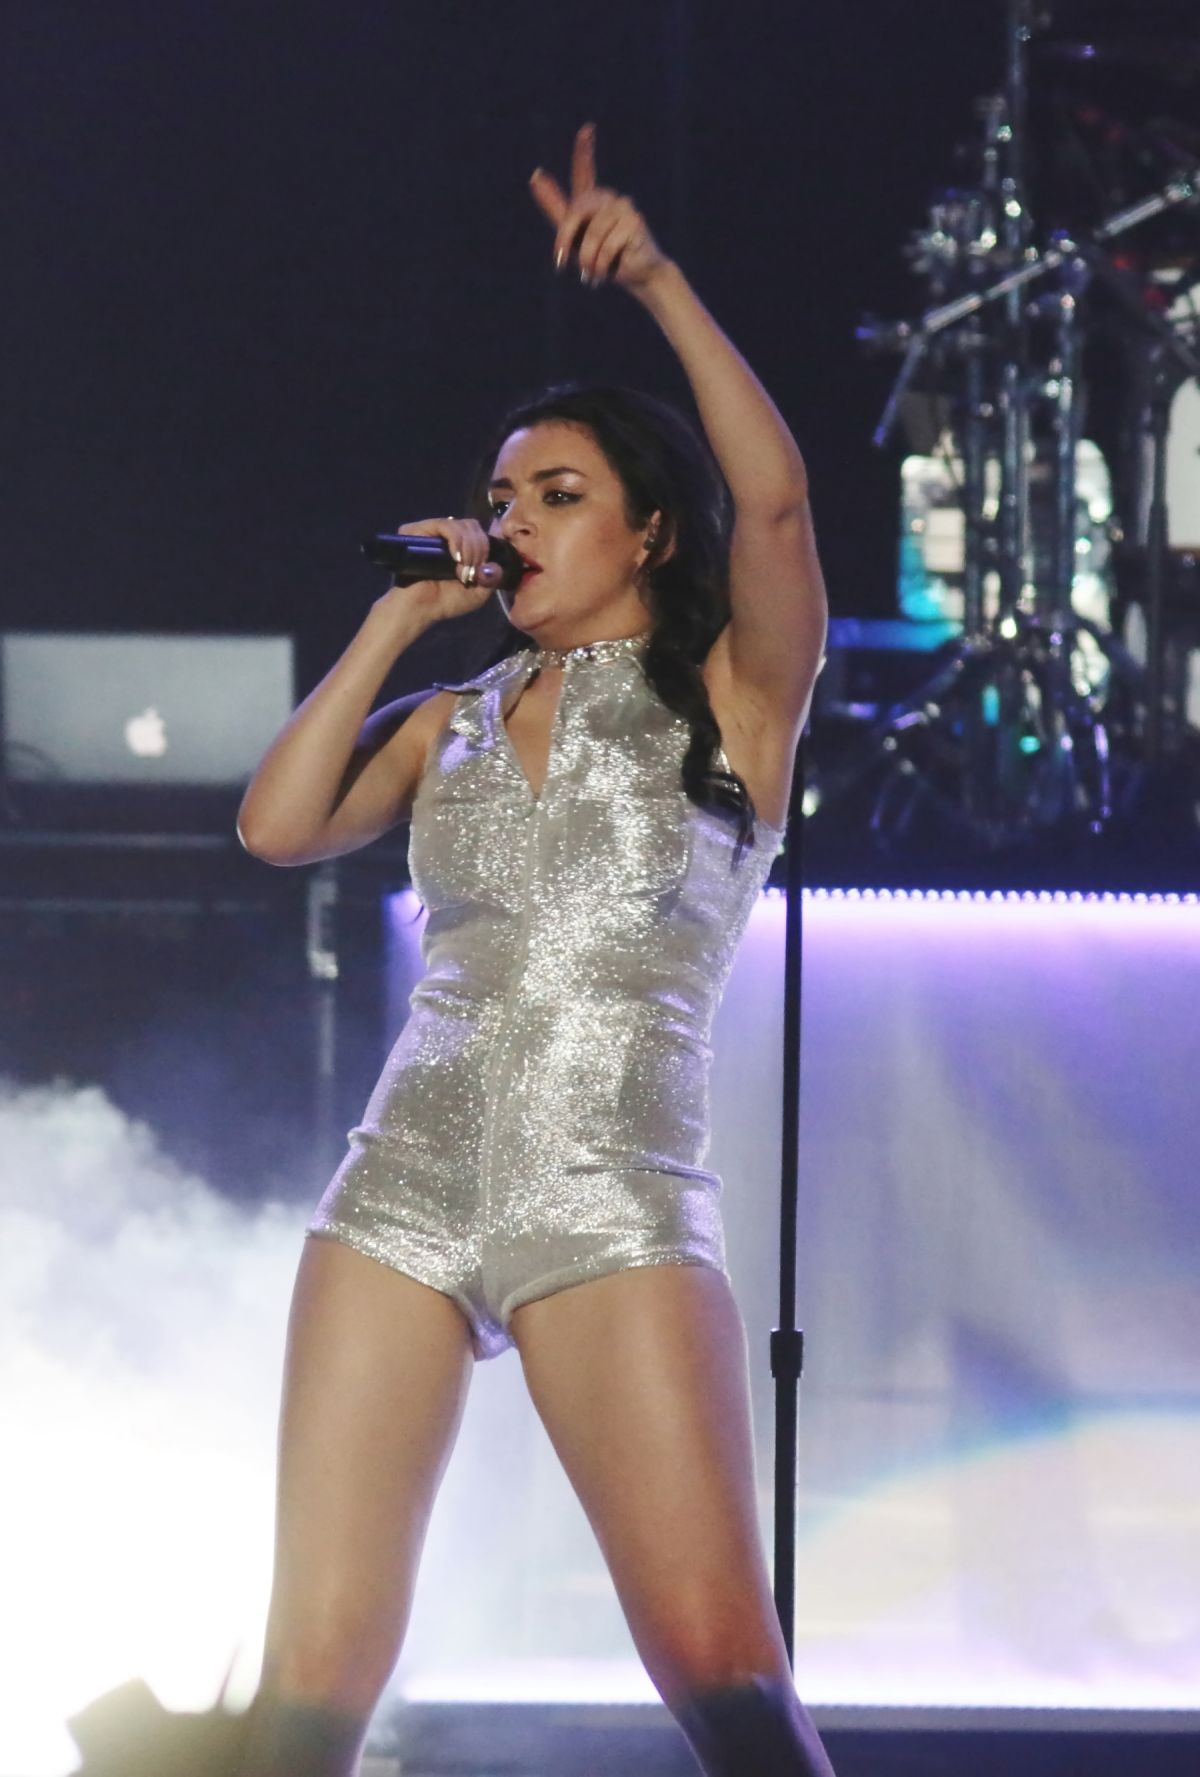 CHARLI XCX Performs on Prismatic Tour in Milan